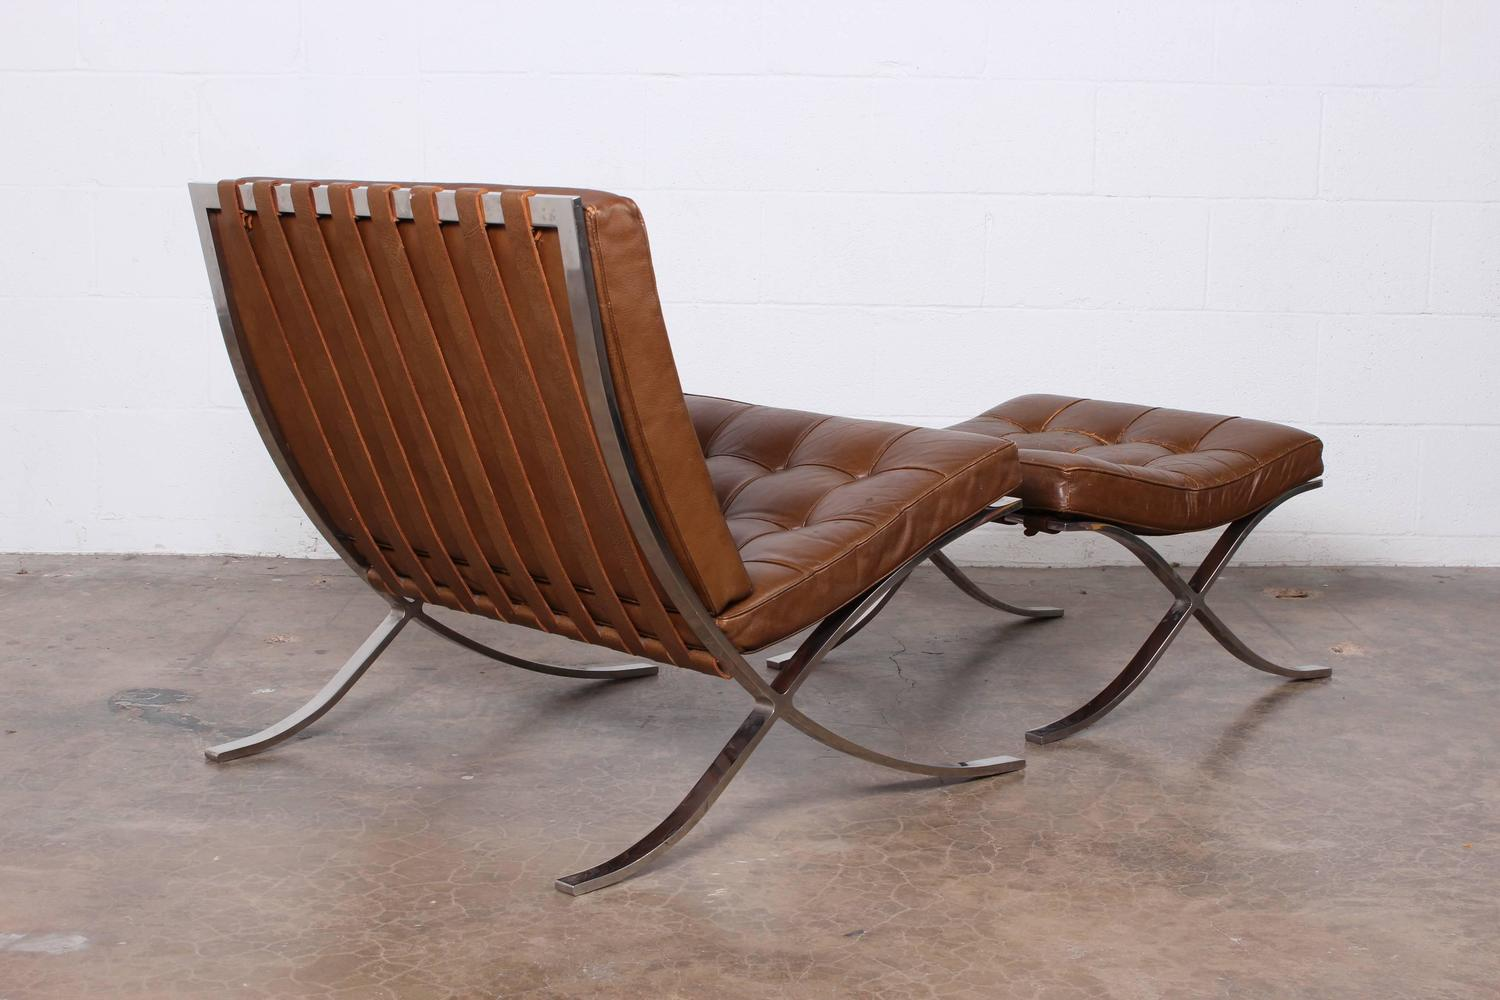 barcelona chairs for sale wicker adirondack chair and ottoman by mies van der rohe knoll